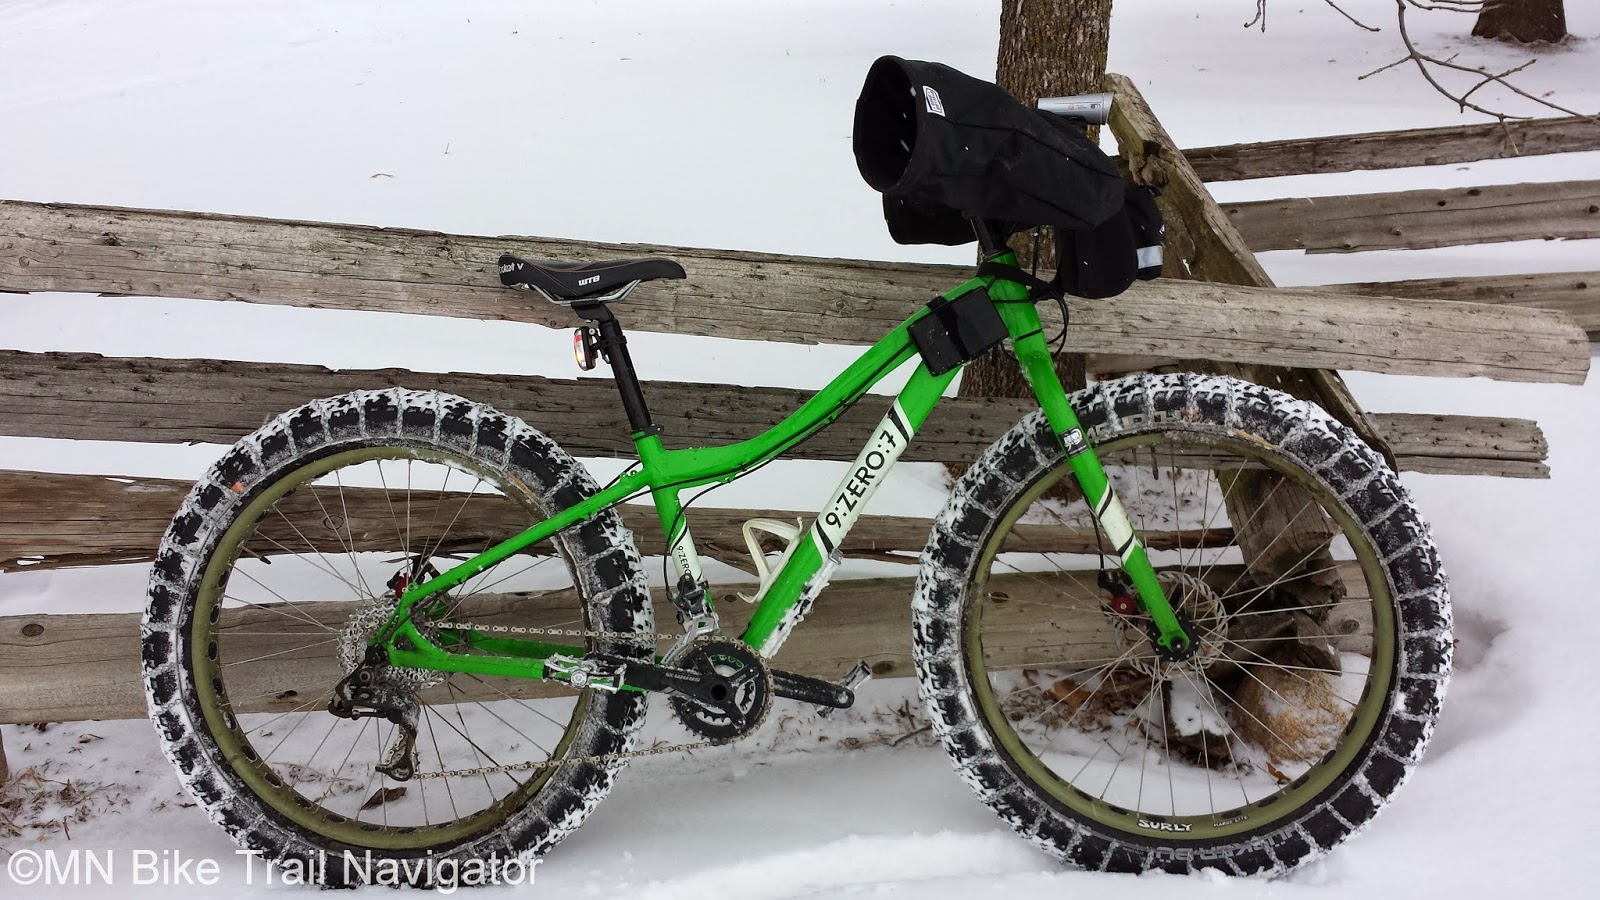 Mn Bike Trail Navigator Product Review Slipnot Traction Systems